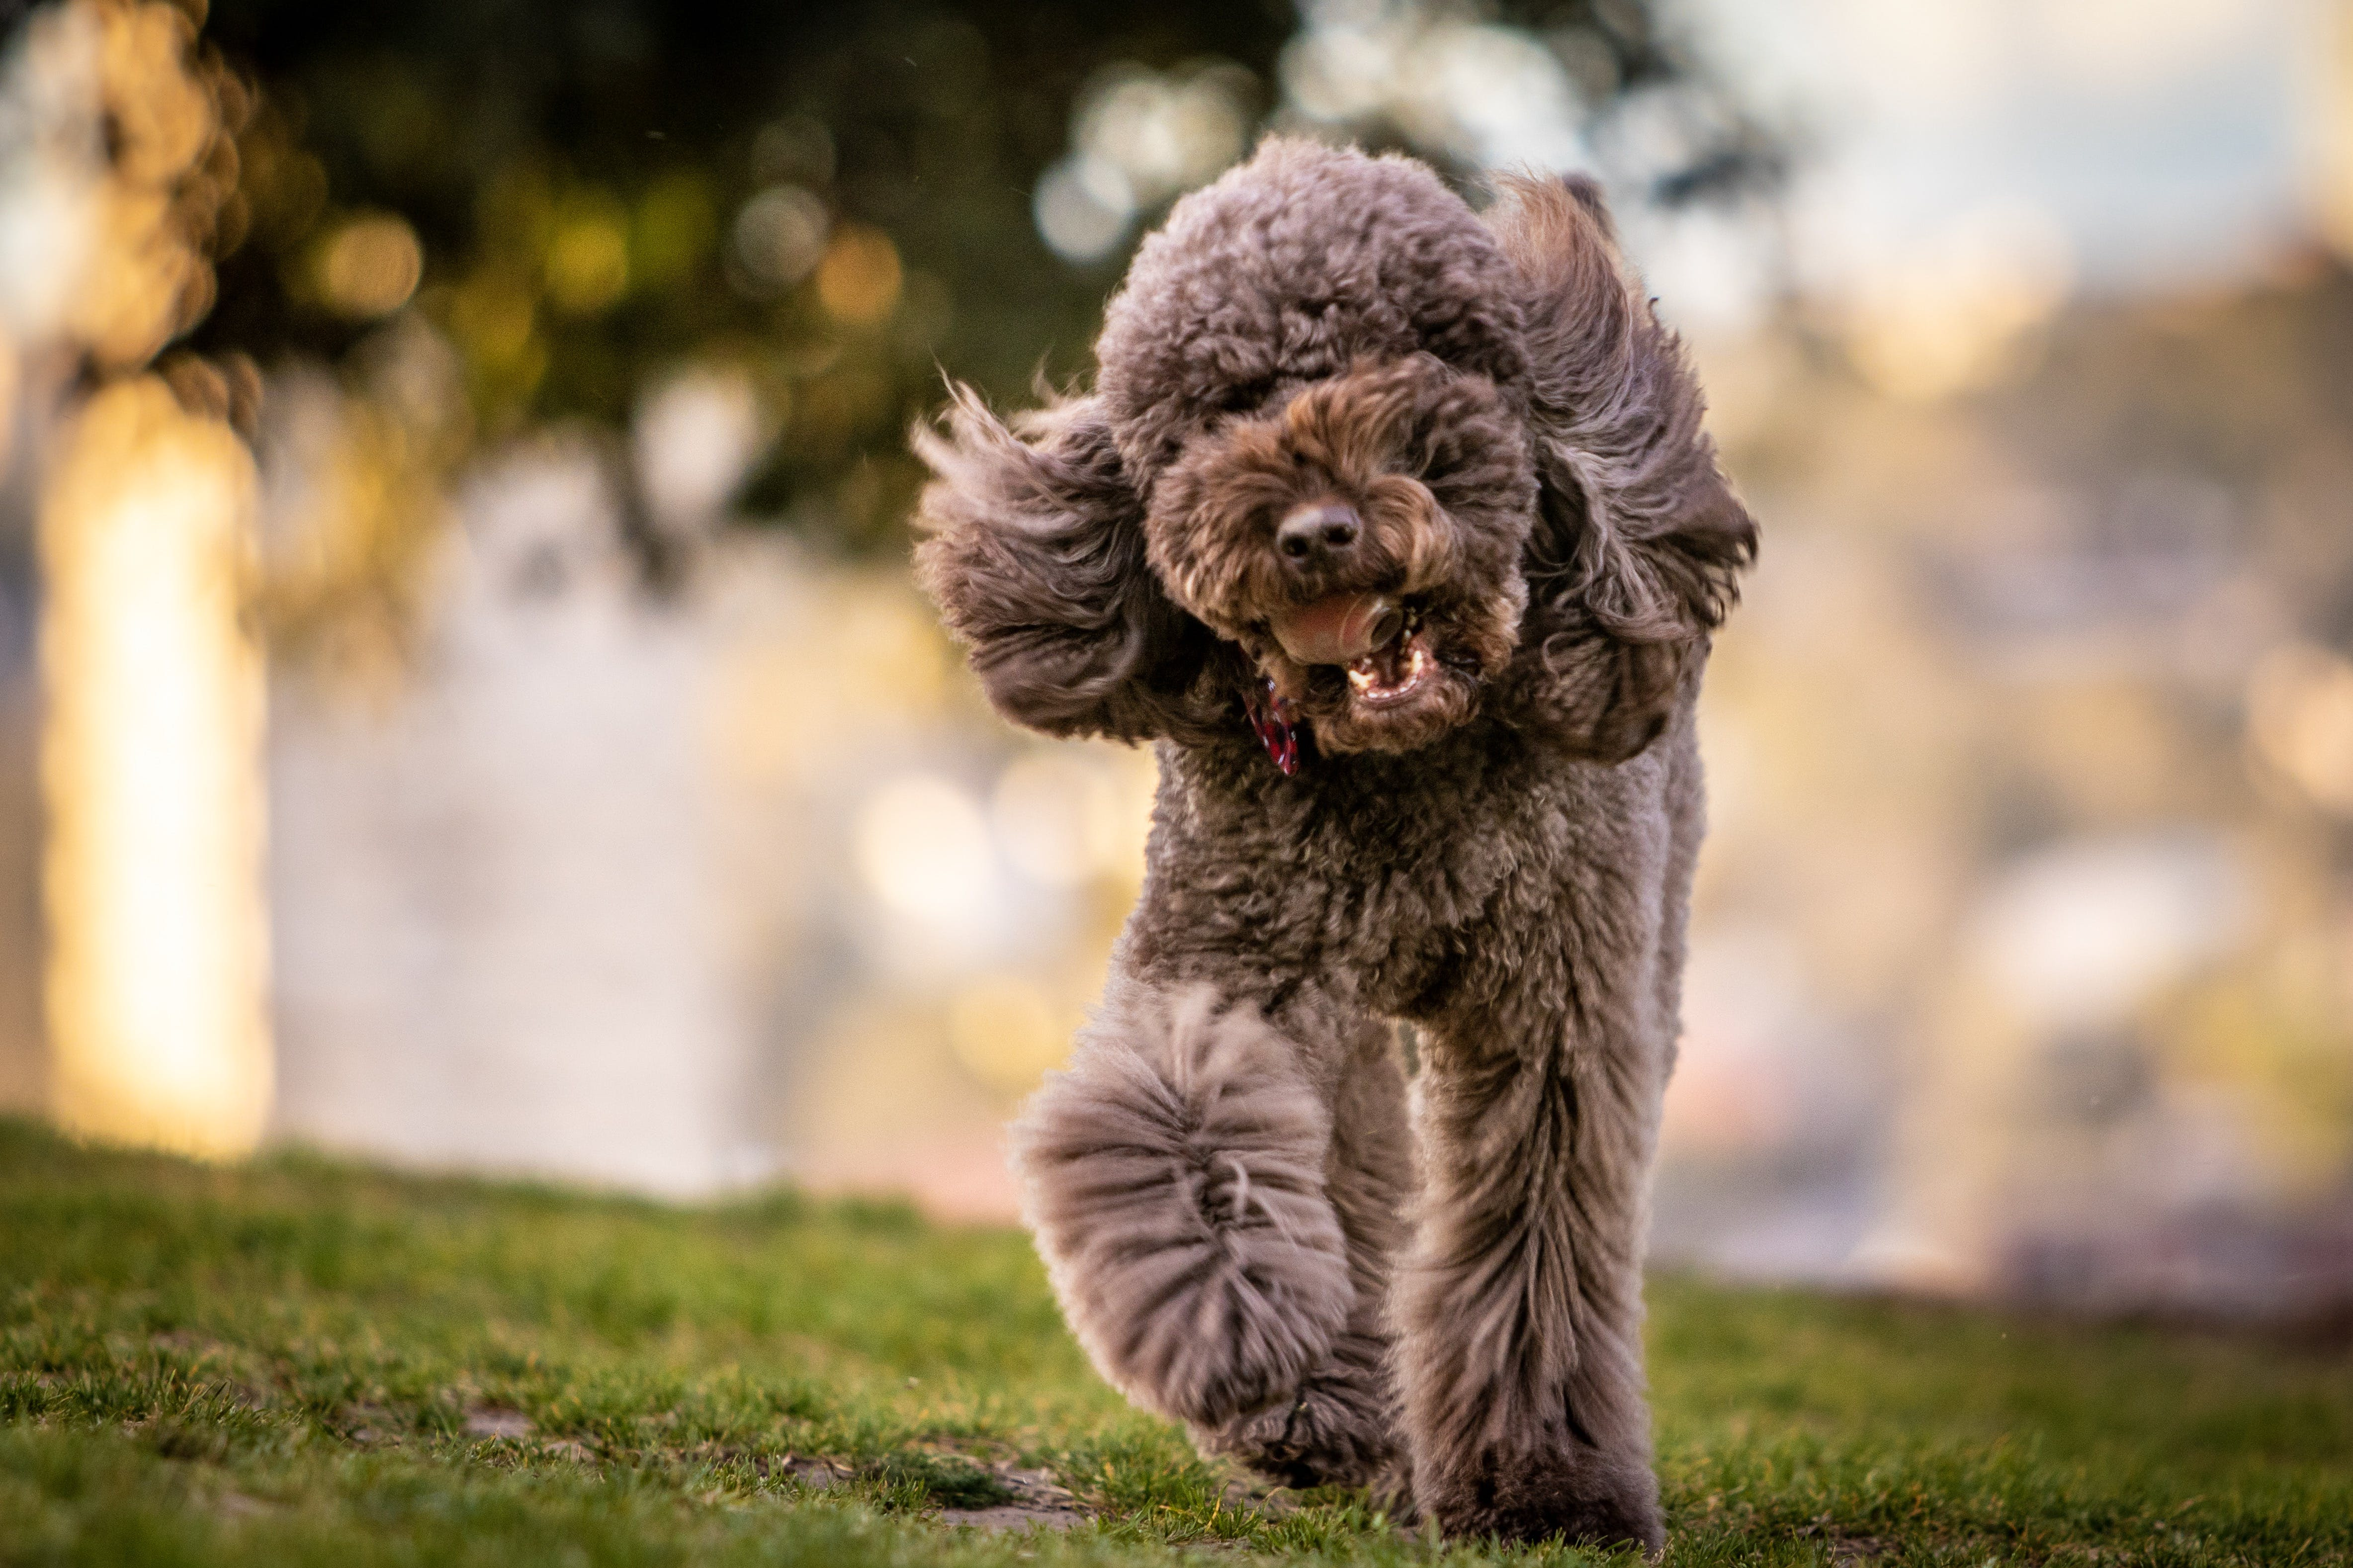 Adult Gray Toy Poodle on Grass Field